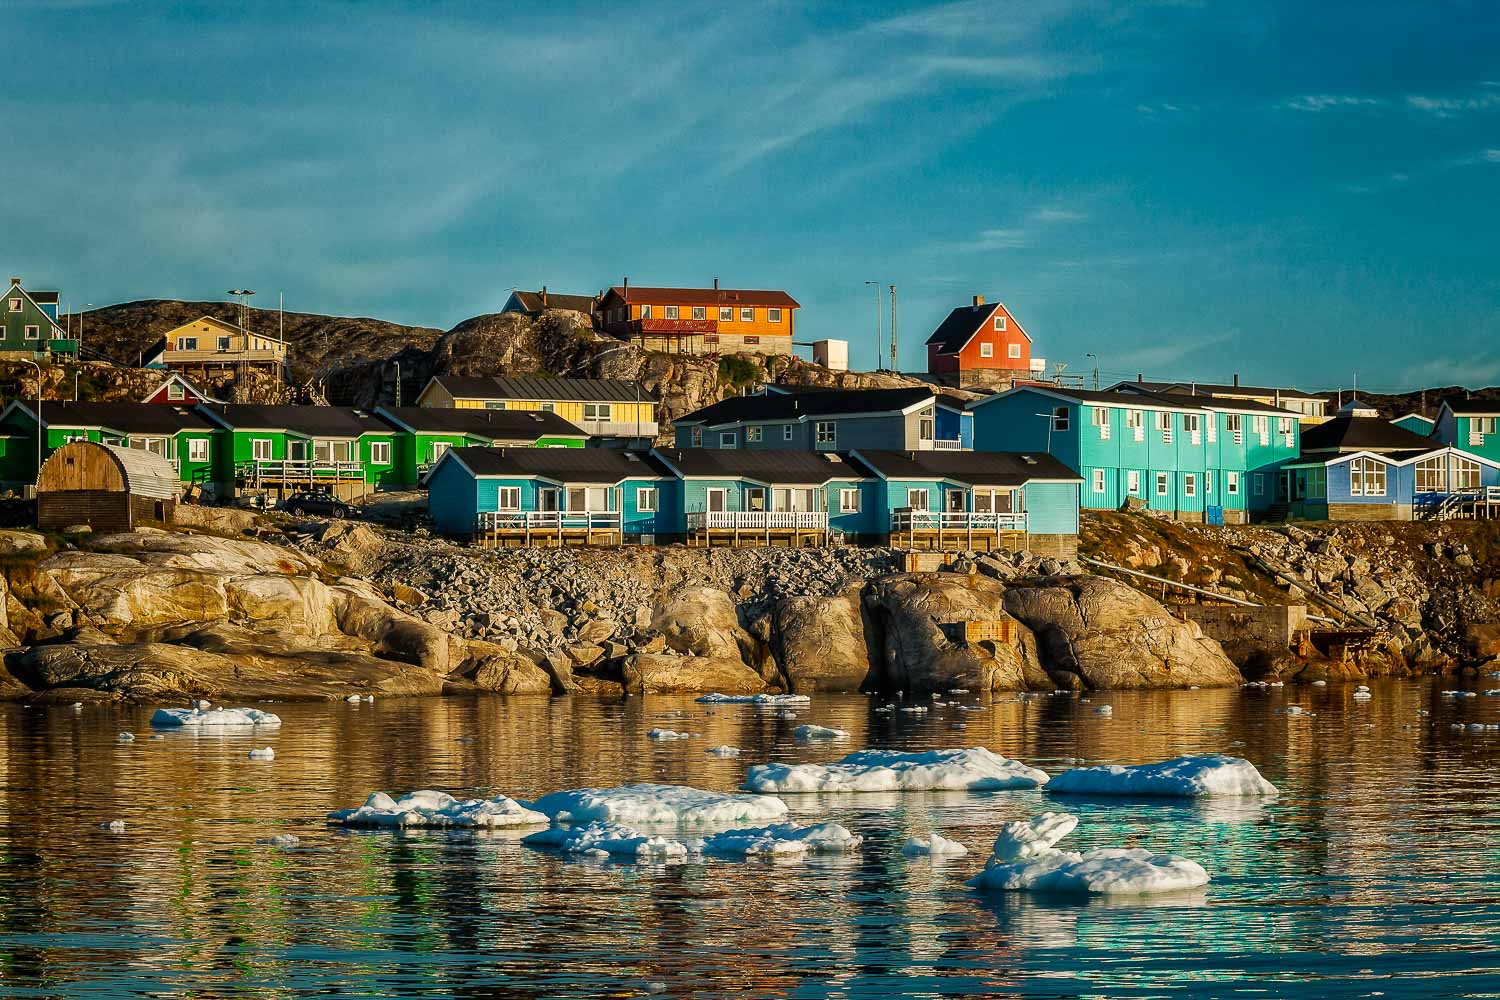 Colorful accommodation overlooking the waters of the Ilulissat Icefjord in Ilulissat, Greenland.